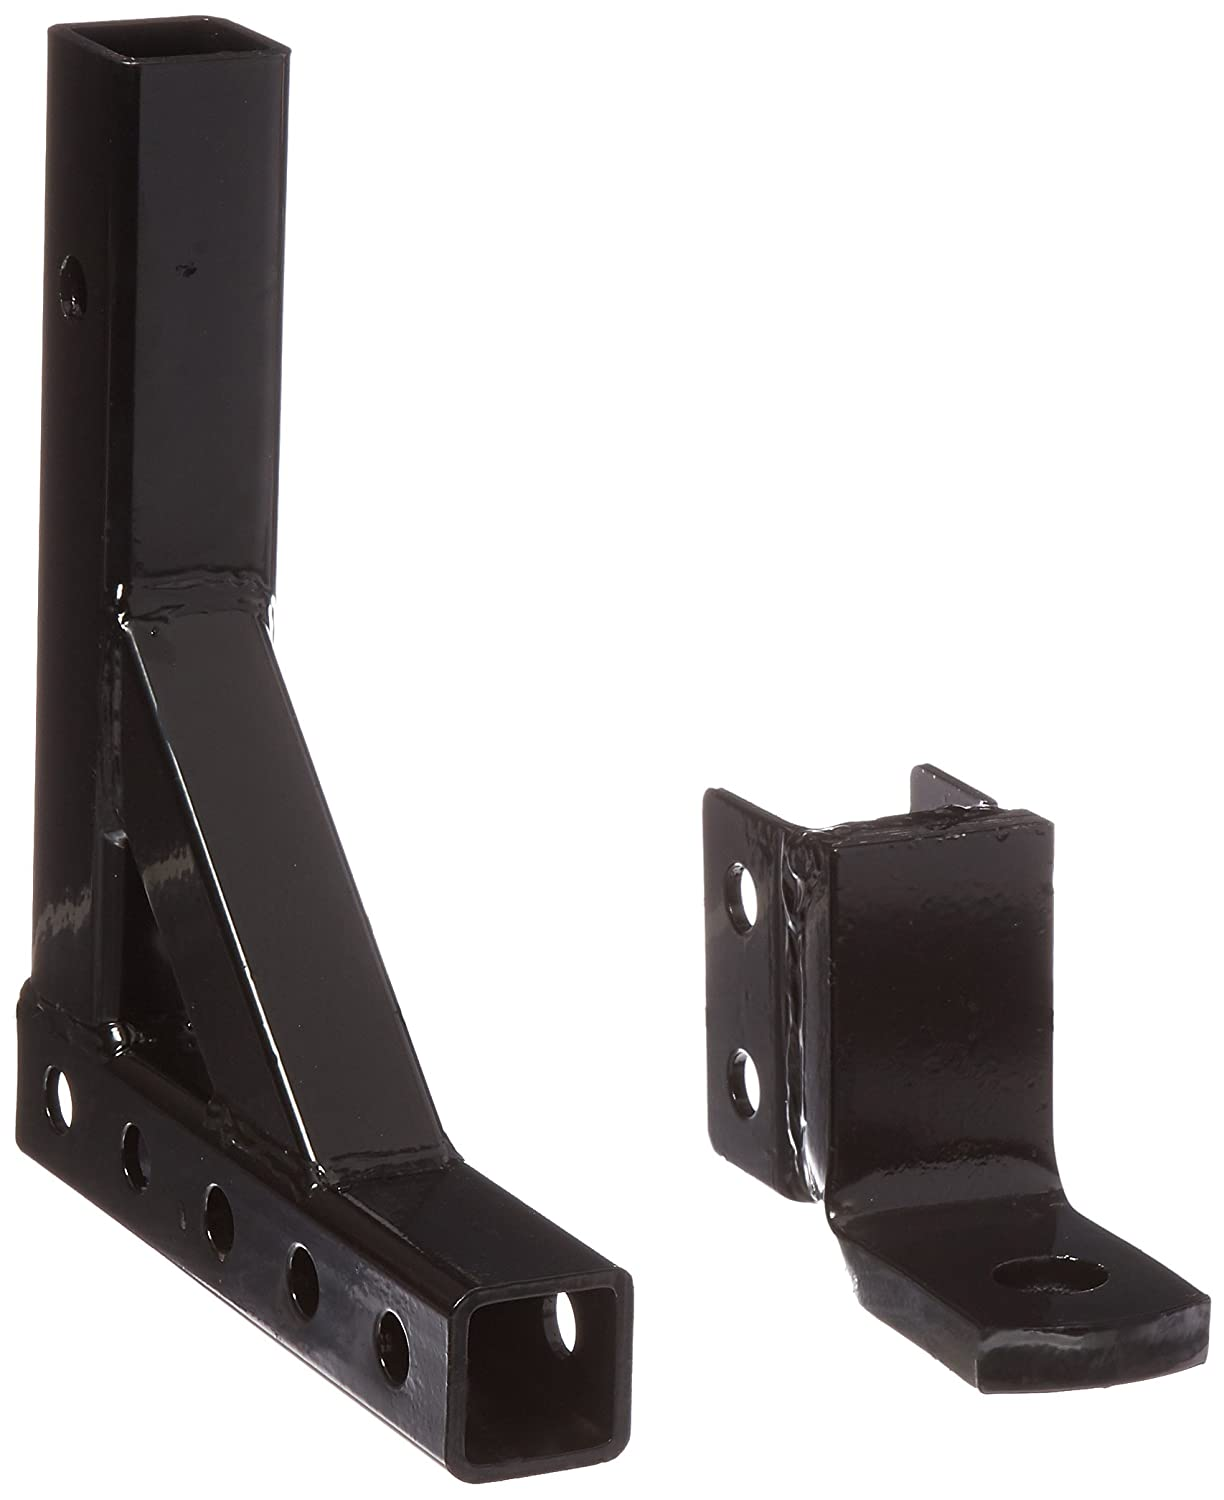 Grizzly H7594 Adjustable Ball Mount Hitch